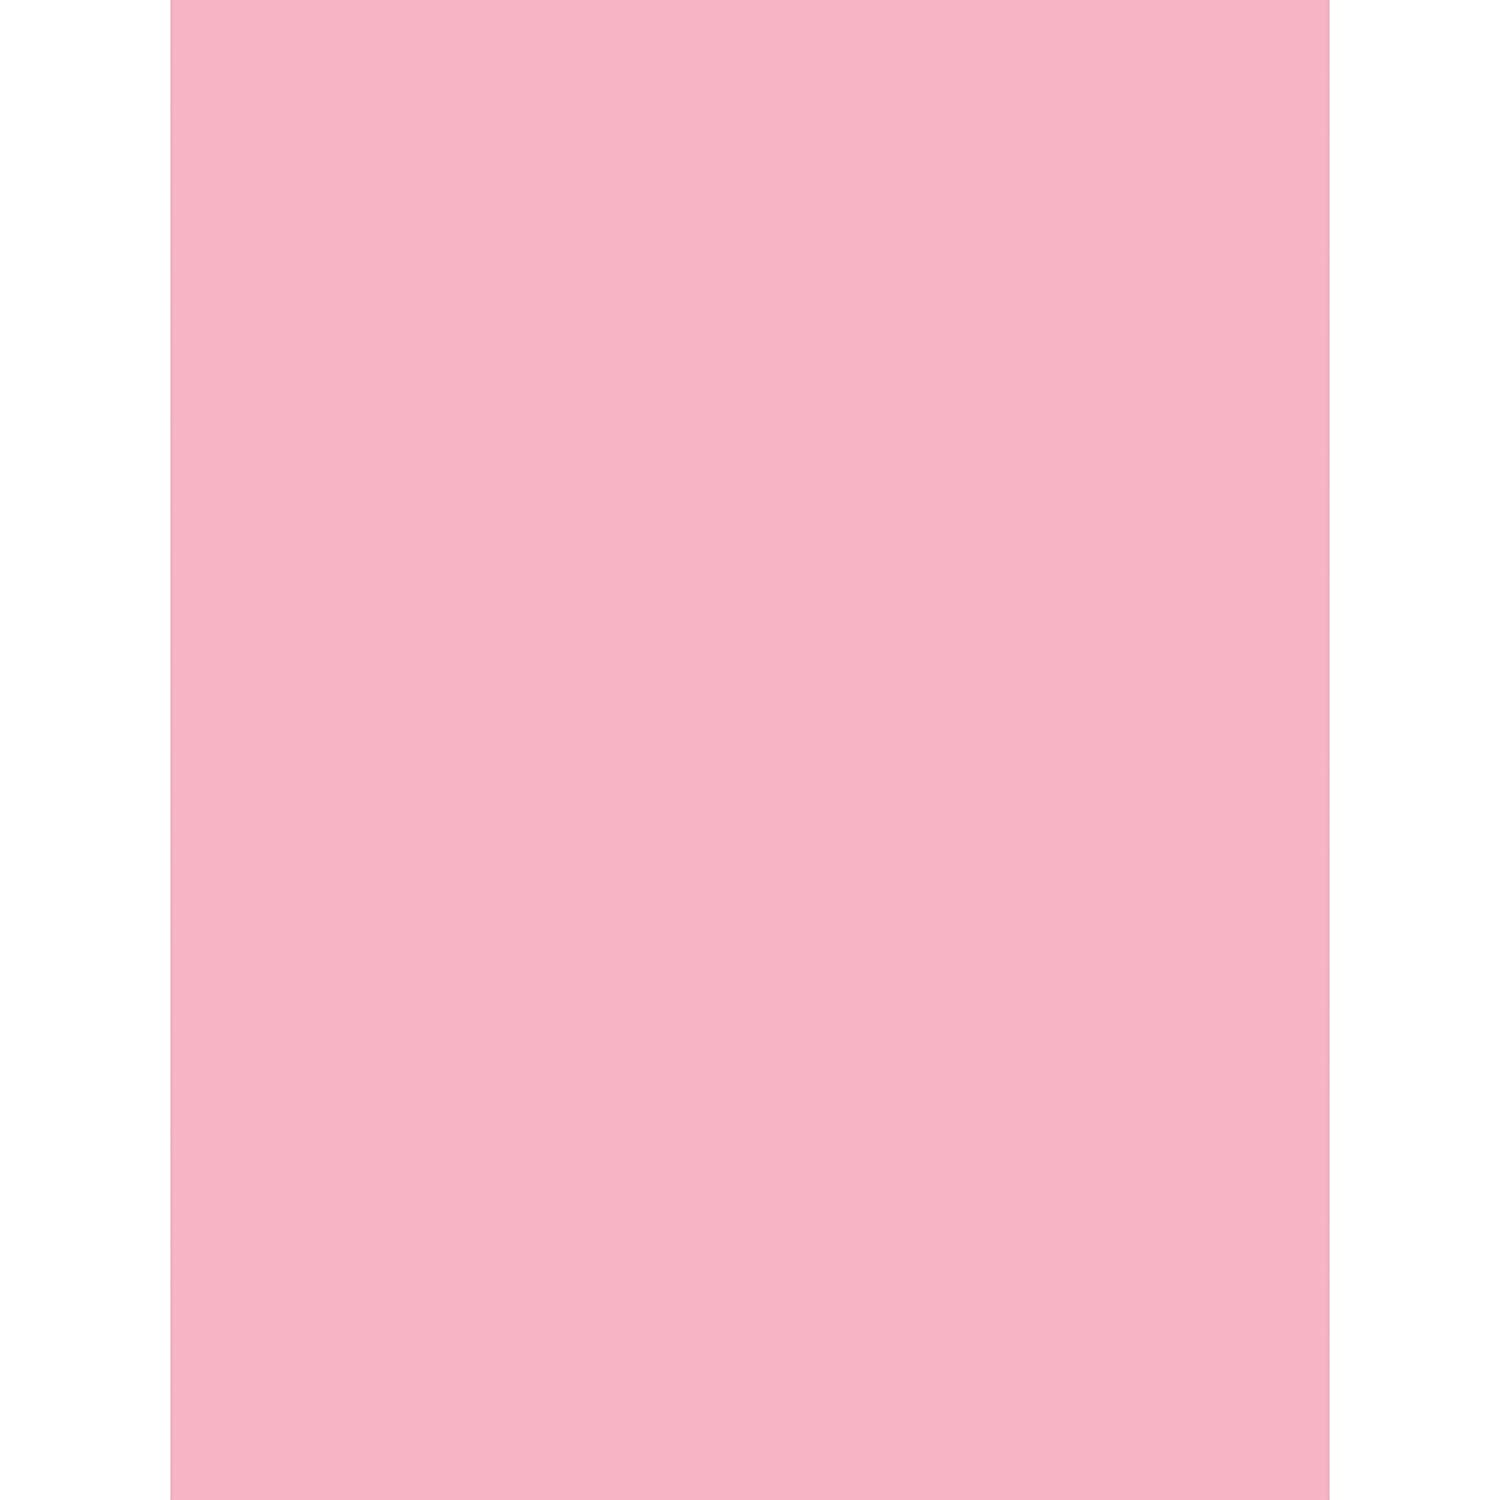 Sparco Products 500-Sheet 8.5-Inchx11-Inch Multi-Purpose Paper (SPR05124), Pink S.P. Richards CA